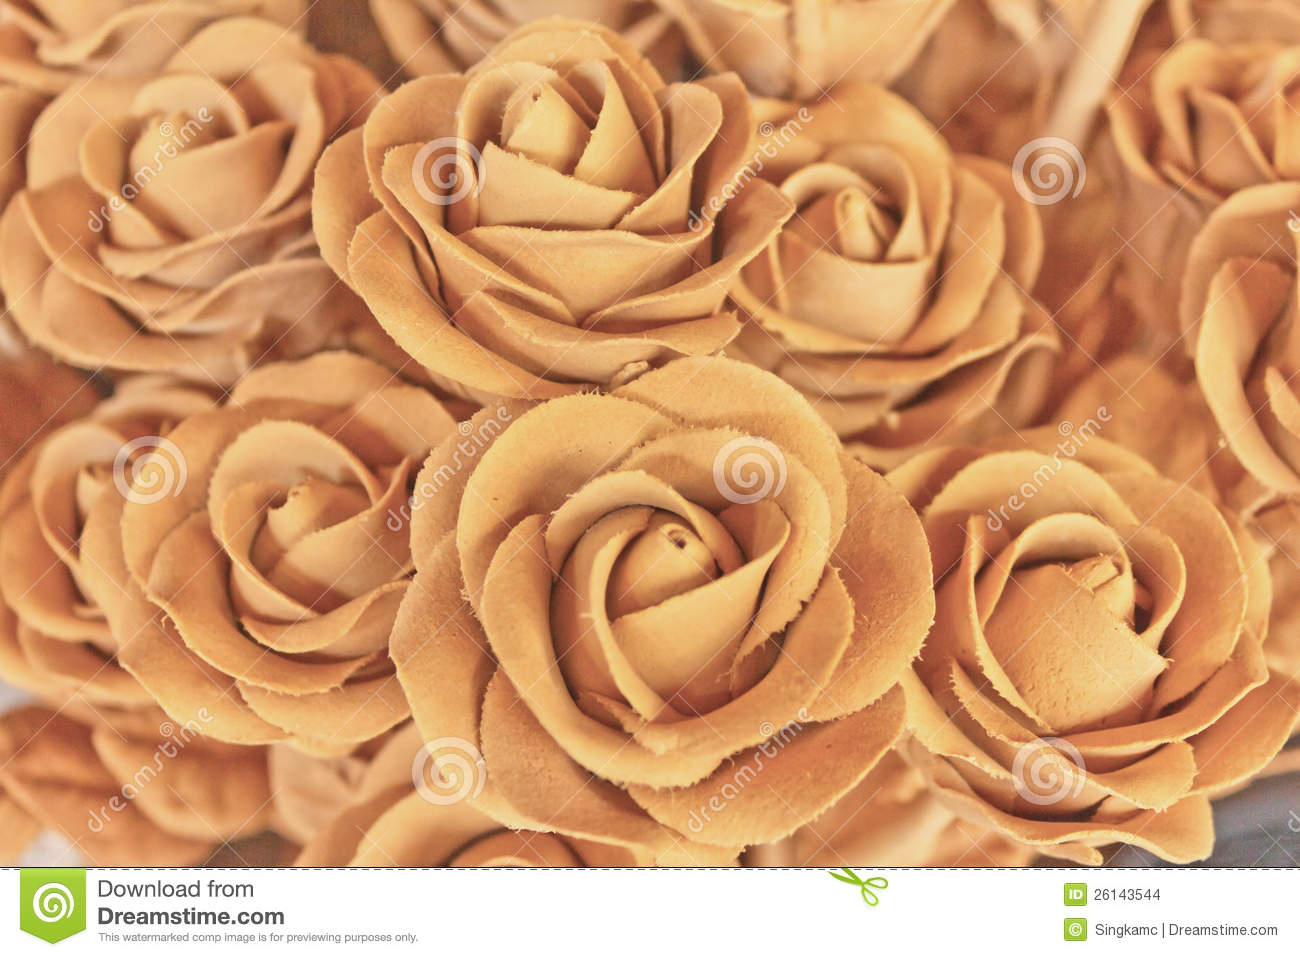 Ornate wood carving patterns stock photo image of